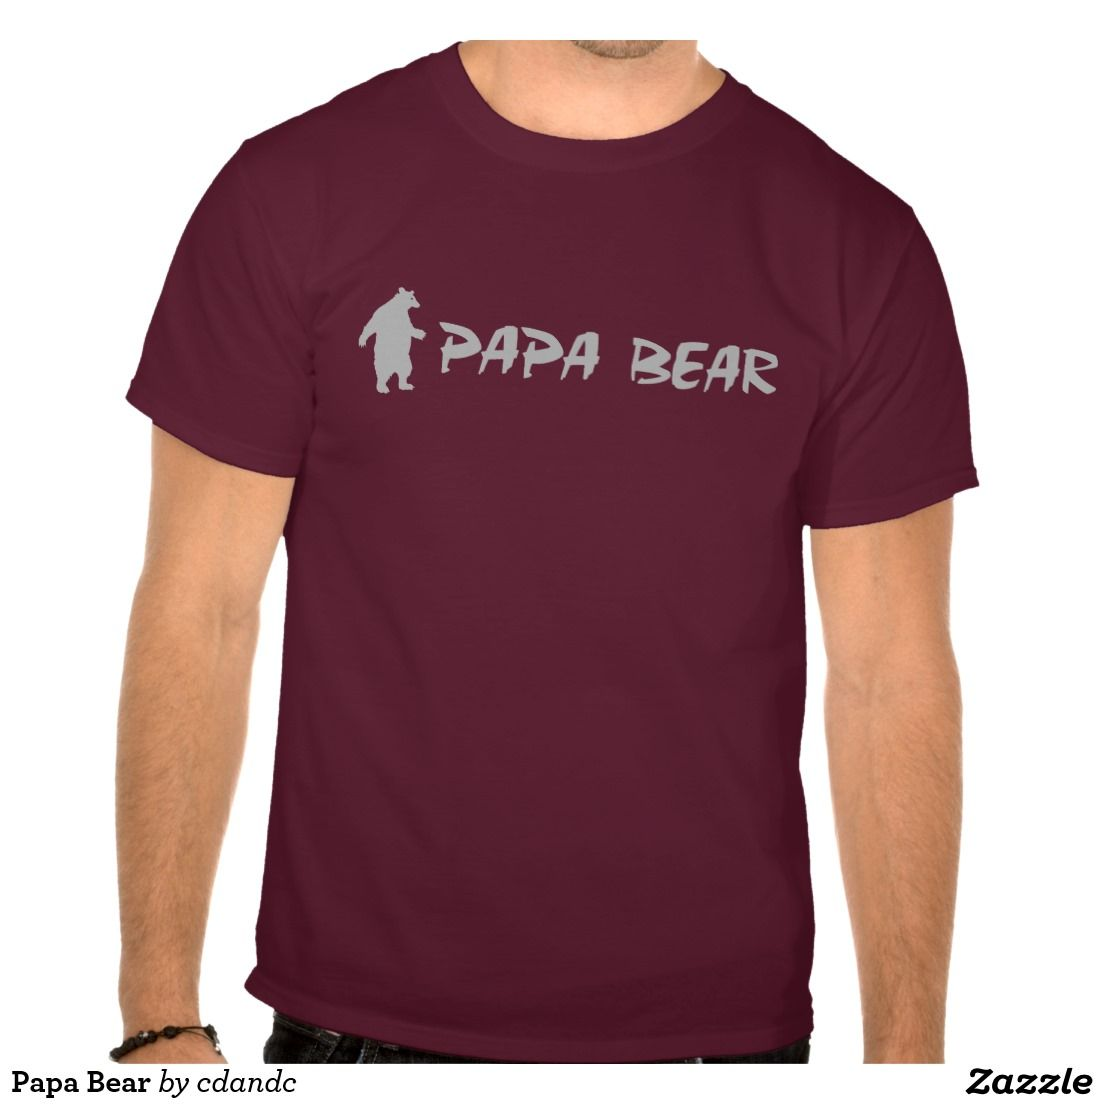 Papa Bear T-shirts - Visit my shop to purchase more fun shirts, hats & more - http://www.zazzle.com/cdandc